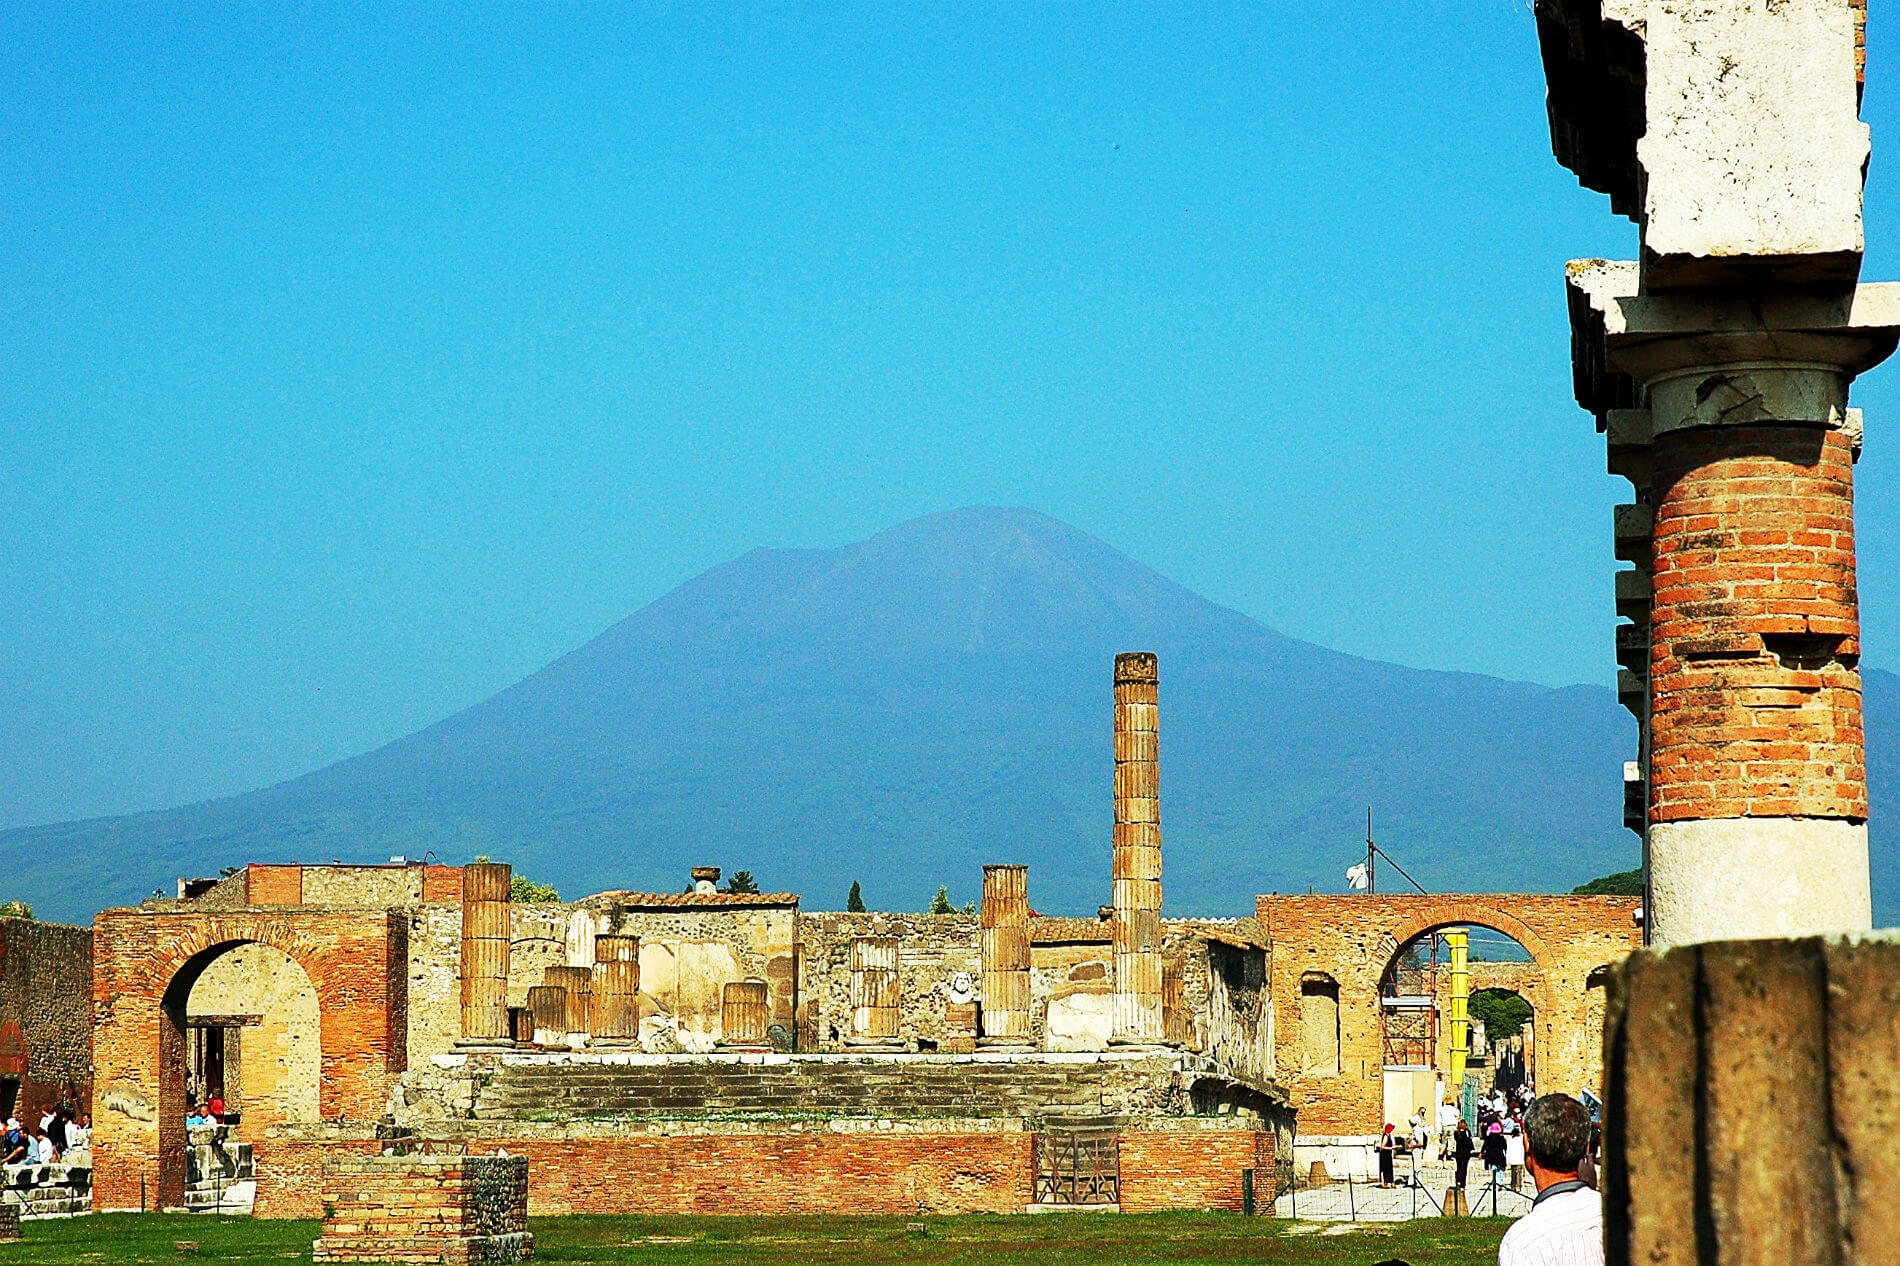 Mount Vesuvius rises in the distance